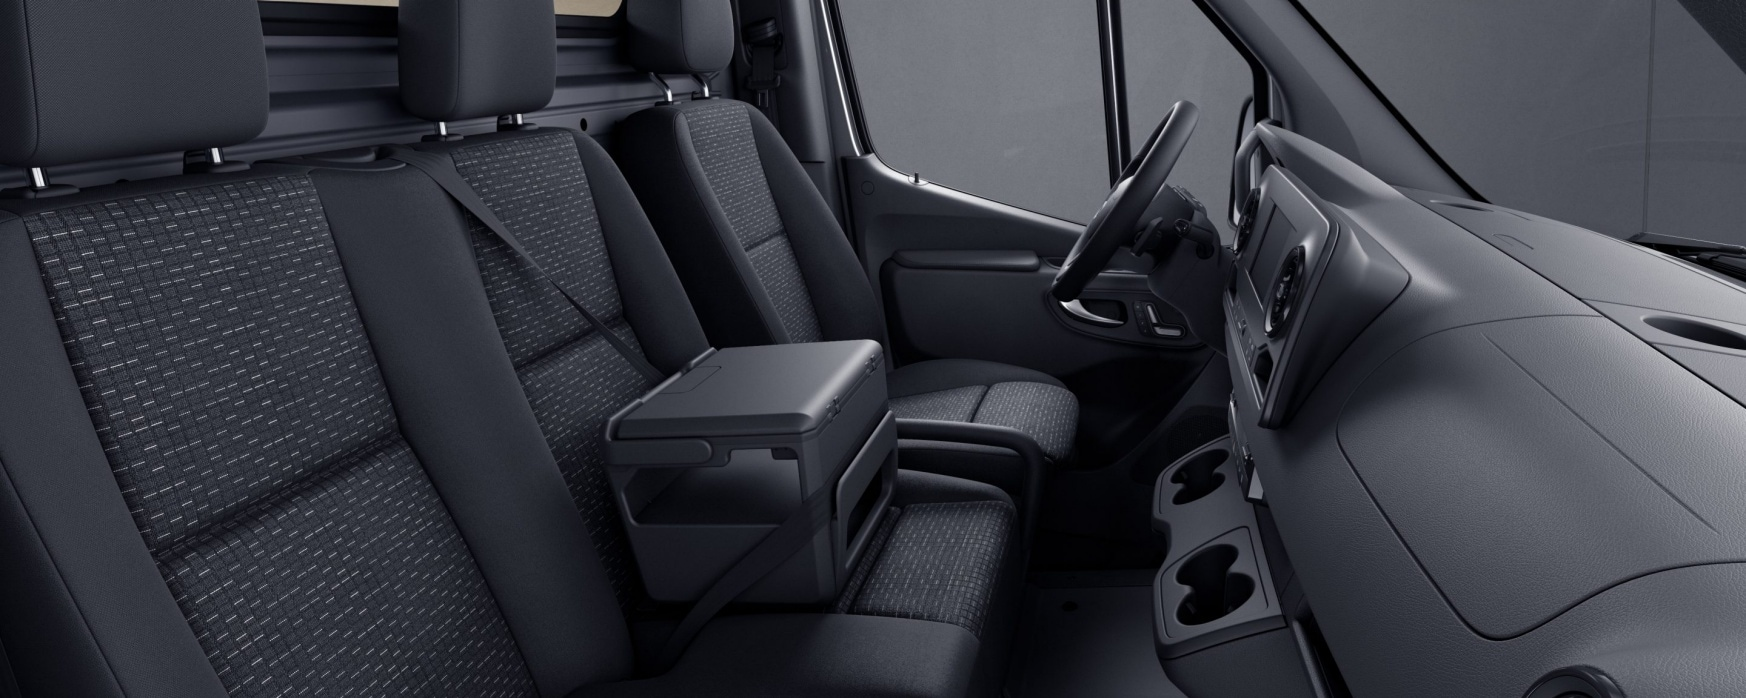 Sprinter Chassis Cab, Caluma black fabric